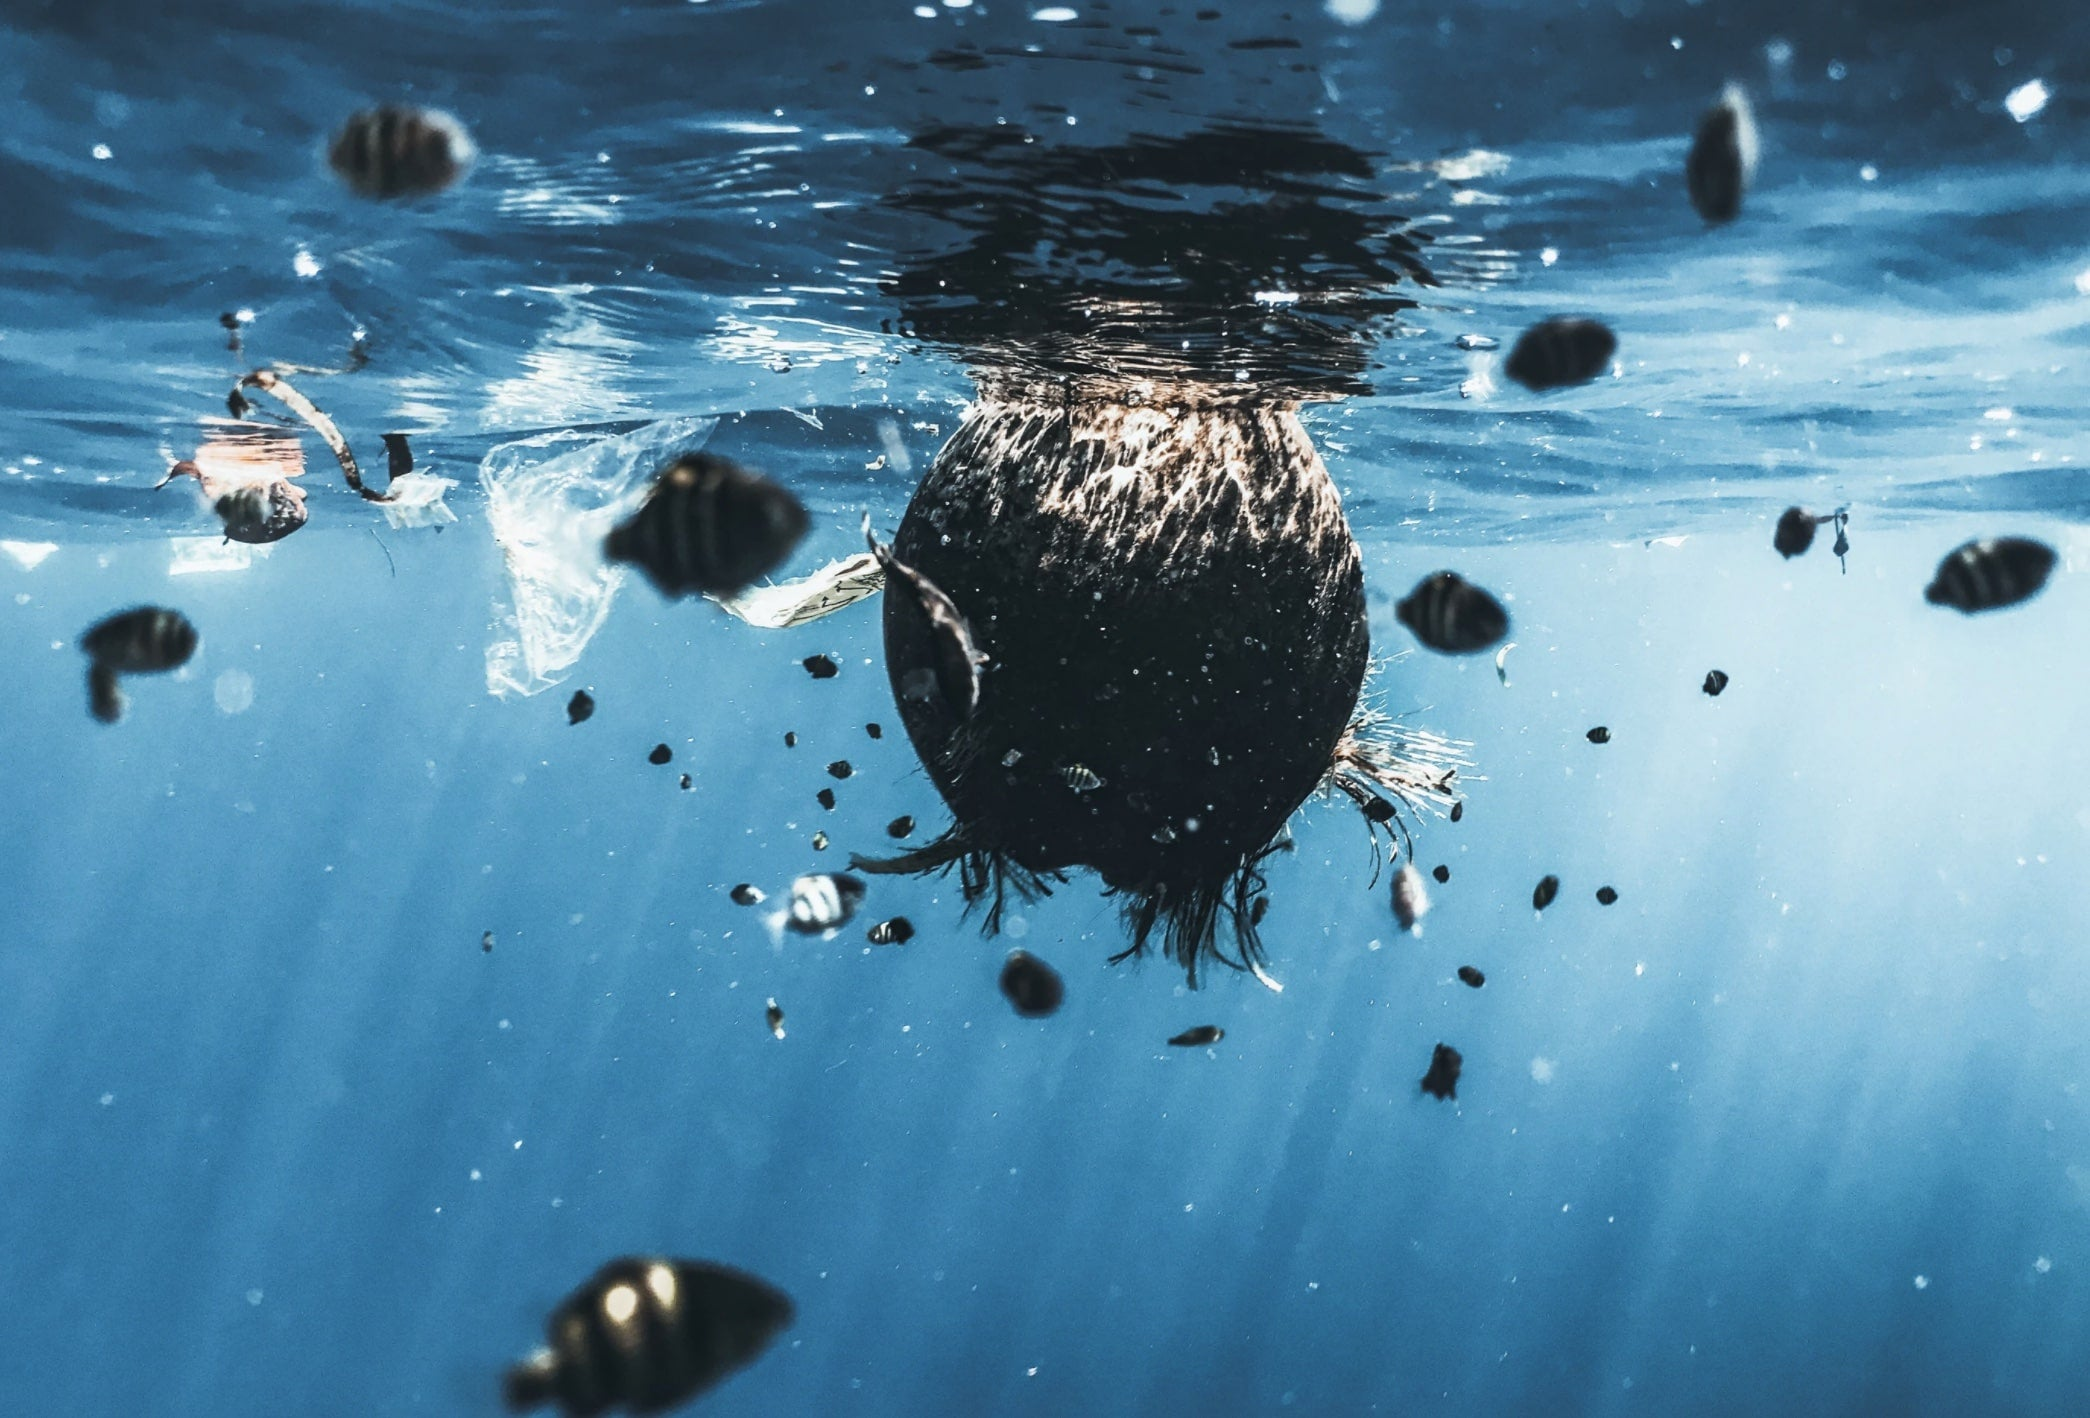 Ways to reduce Ocean Pollutions